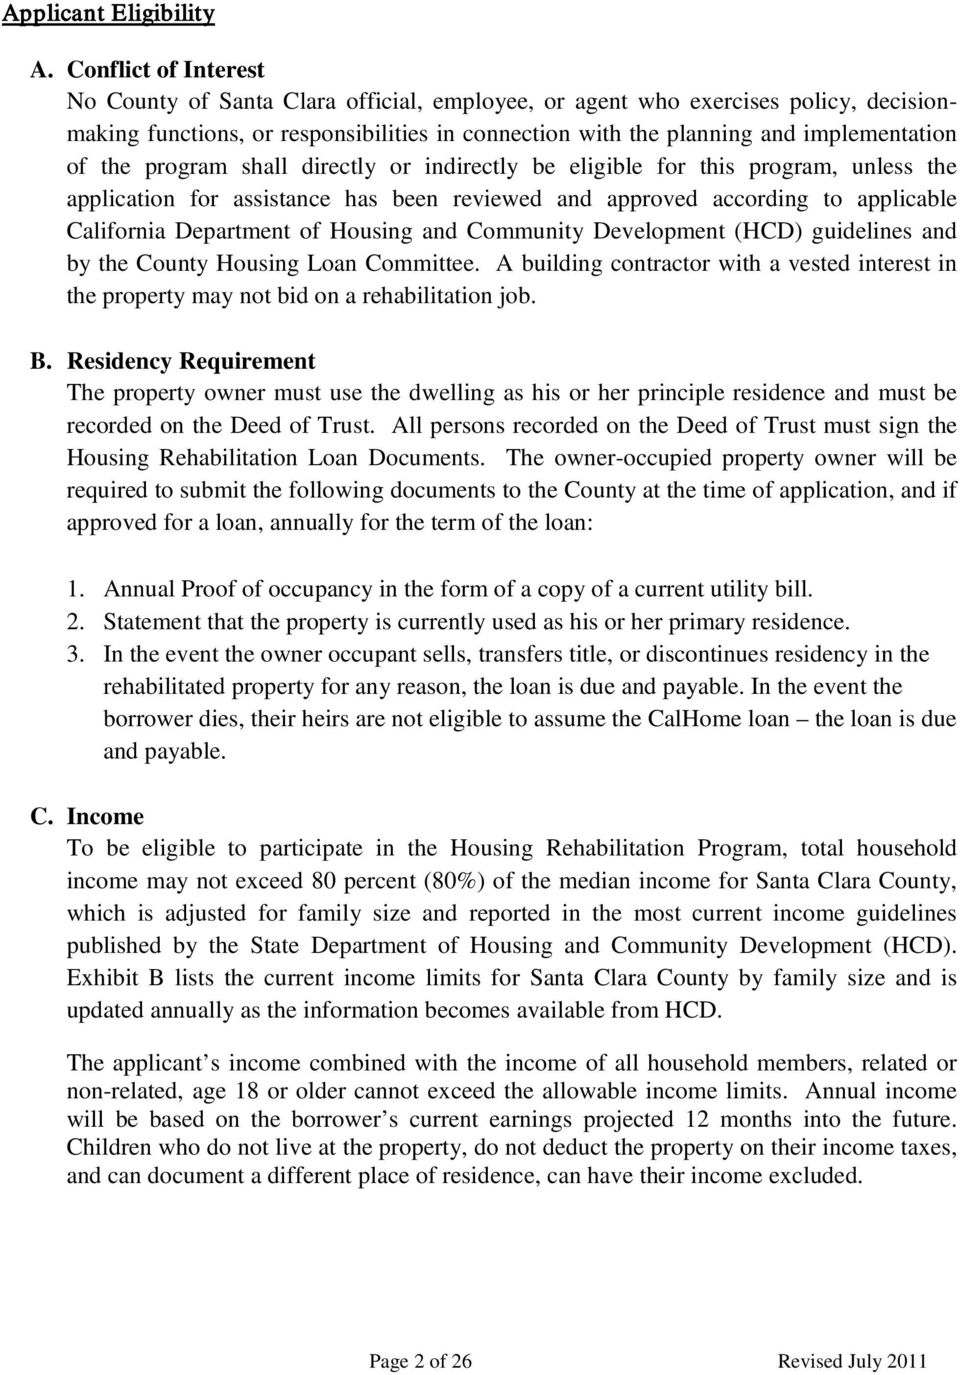 the program shall directly or indirectly be eligible for this program, unless the application for assistance has been reviewed and approved according to applicable California Department of Housing